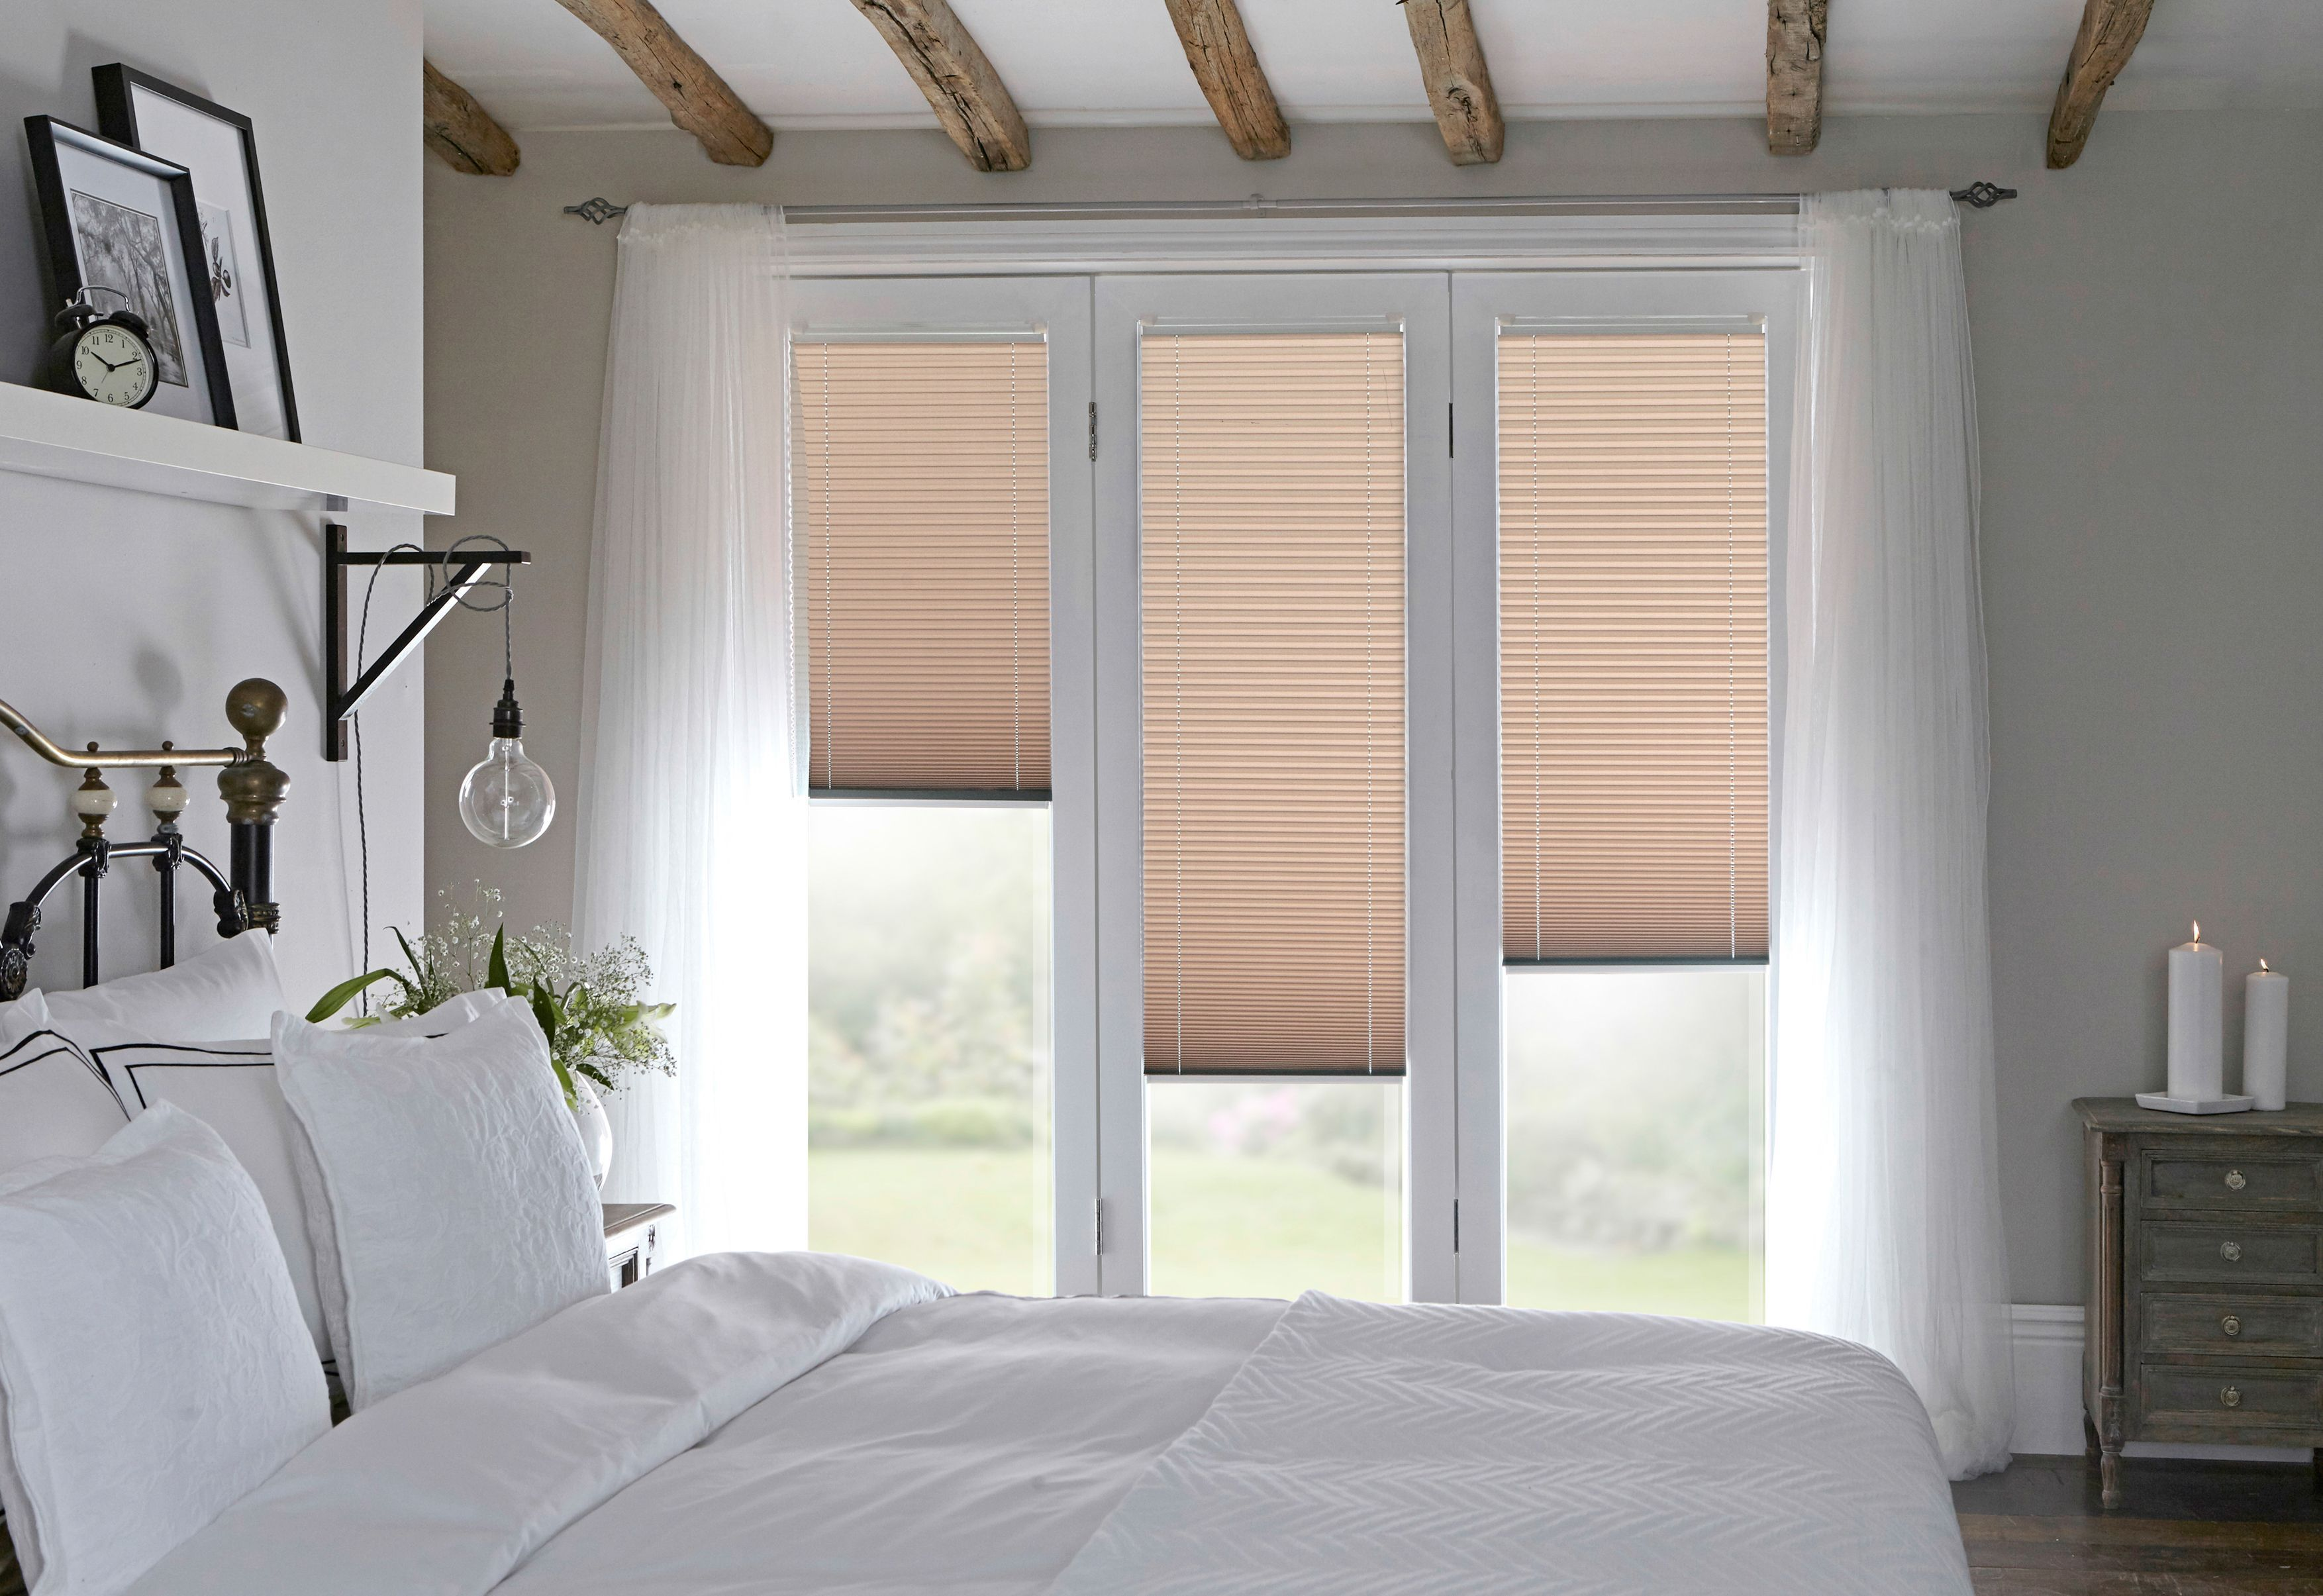 Pleated Blinds From Style Studio Bedroom Blinds Best Blinds For Summer Blush Blinds With Images Modern Window Dressing Curtains With Blinds Living Room Blinds